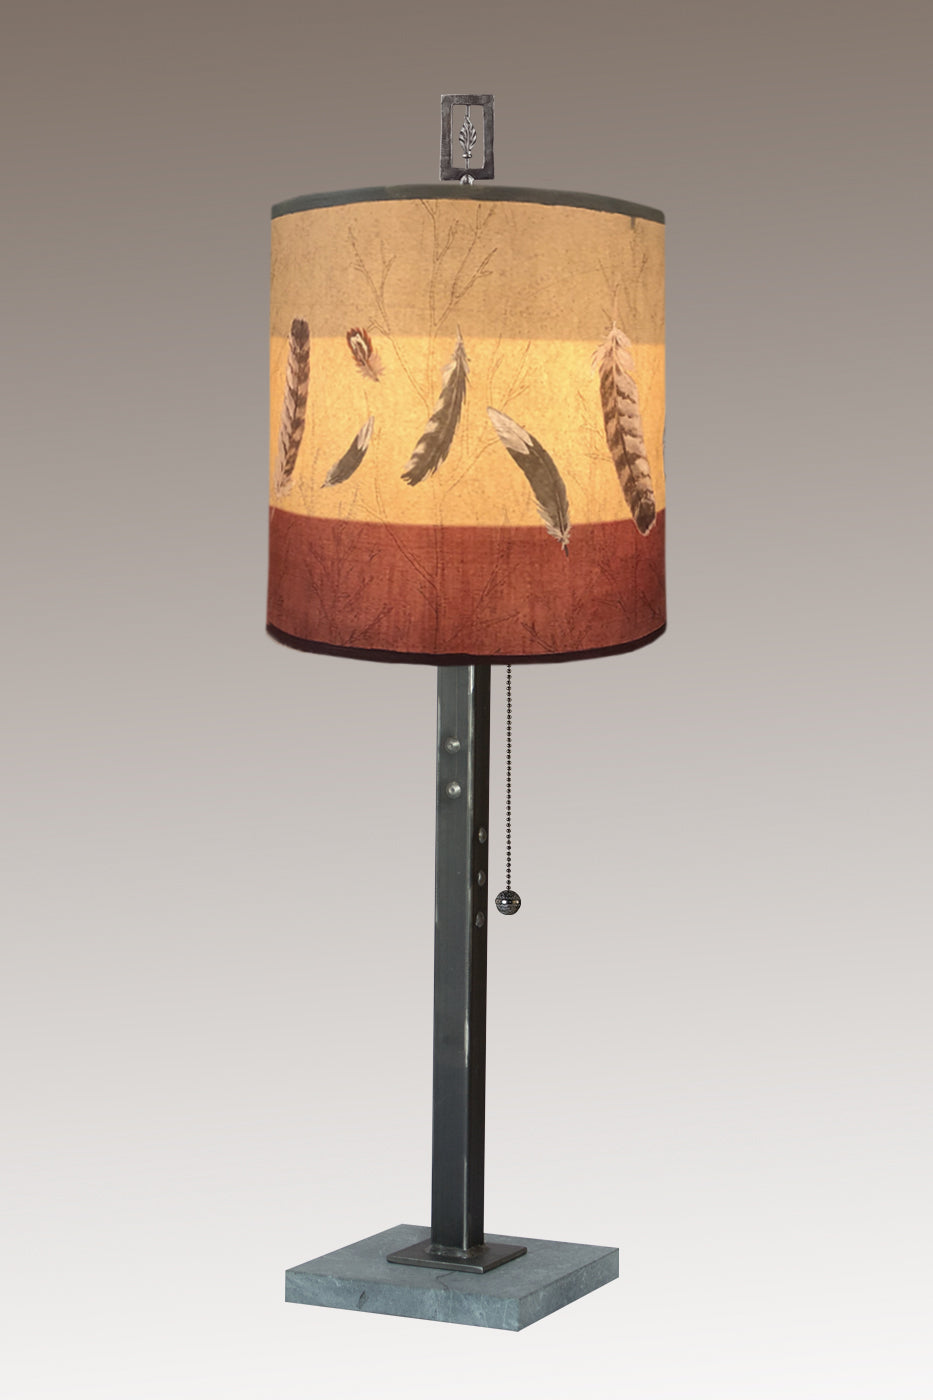 Steel Table Lamp on Marble with Medium Drum Shade in Feathers in Ruby